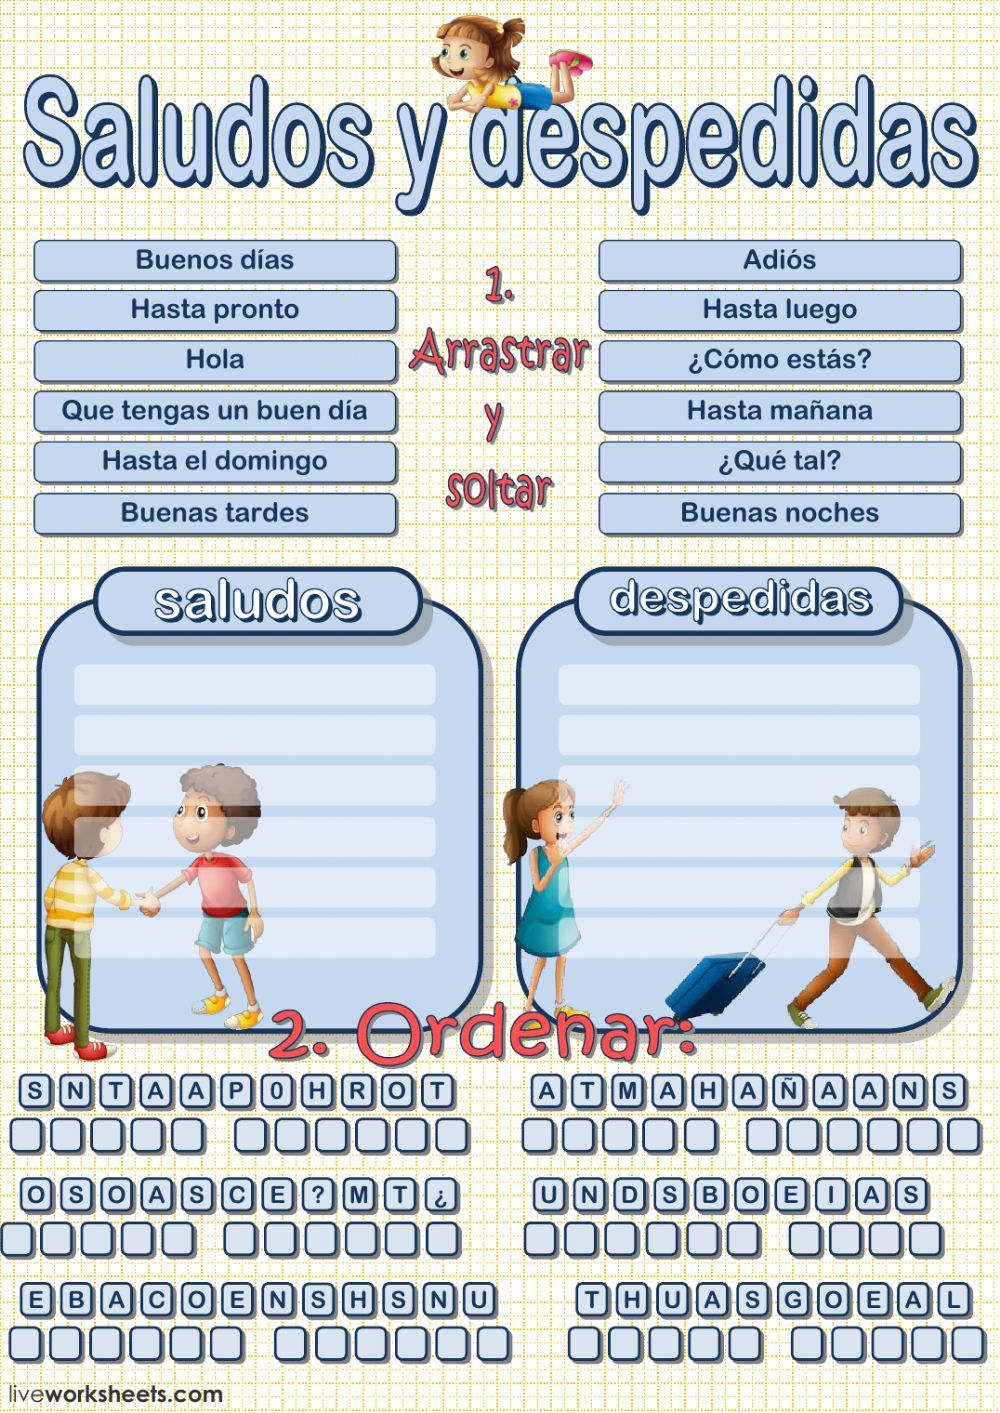 Saludos Y Despedidas Interactive And Downloadable Worksheet You Can Do The Exercises Online O English For Beginners Learning English For Kids Learning Spanish [ 1413 x 1000 Pixel ]